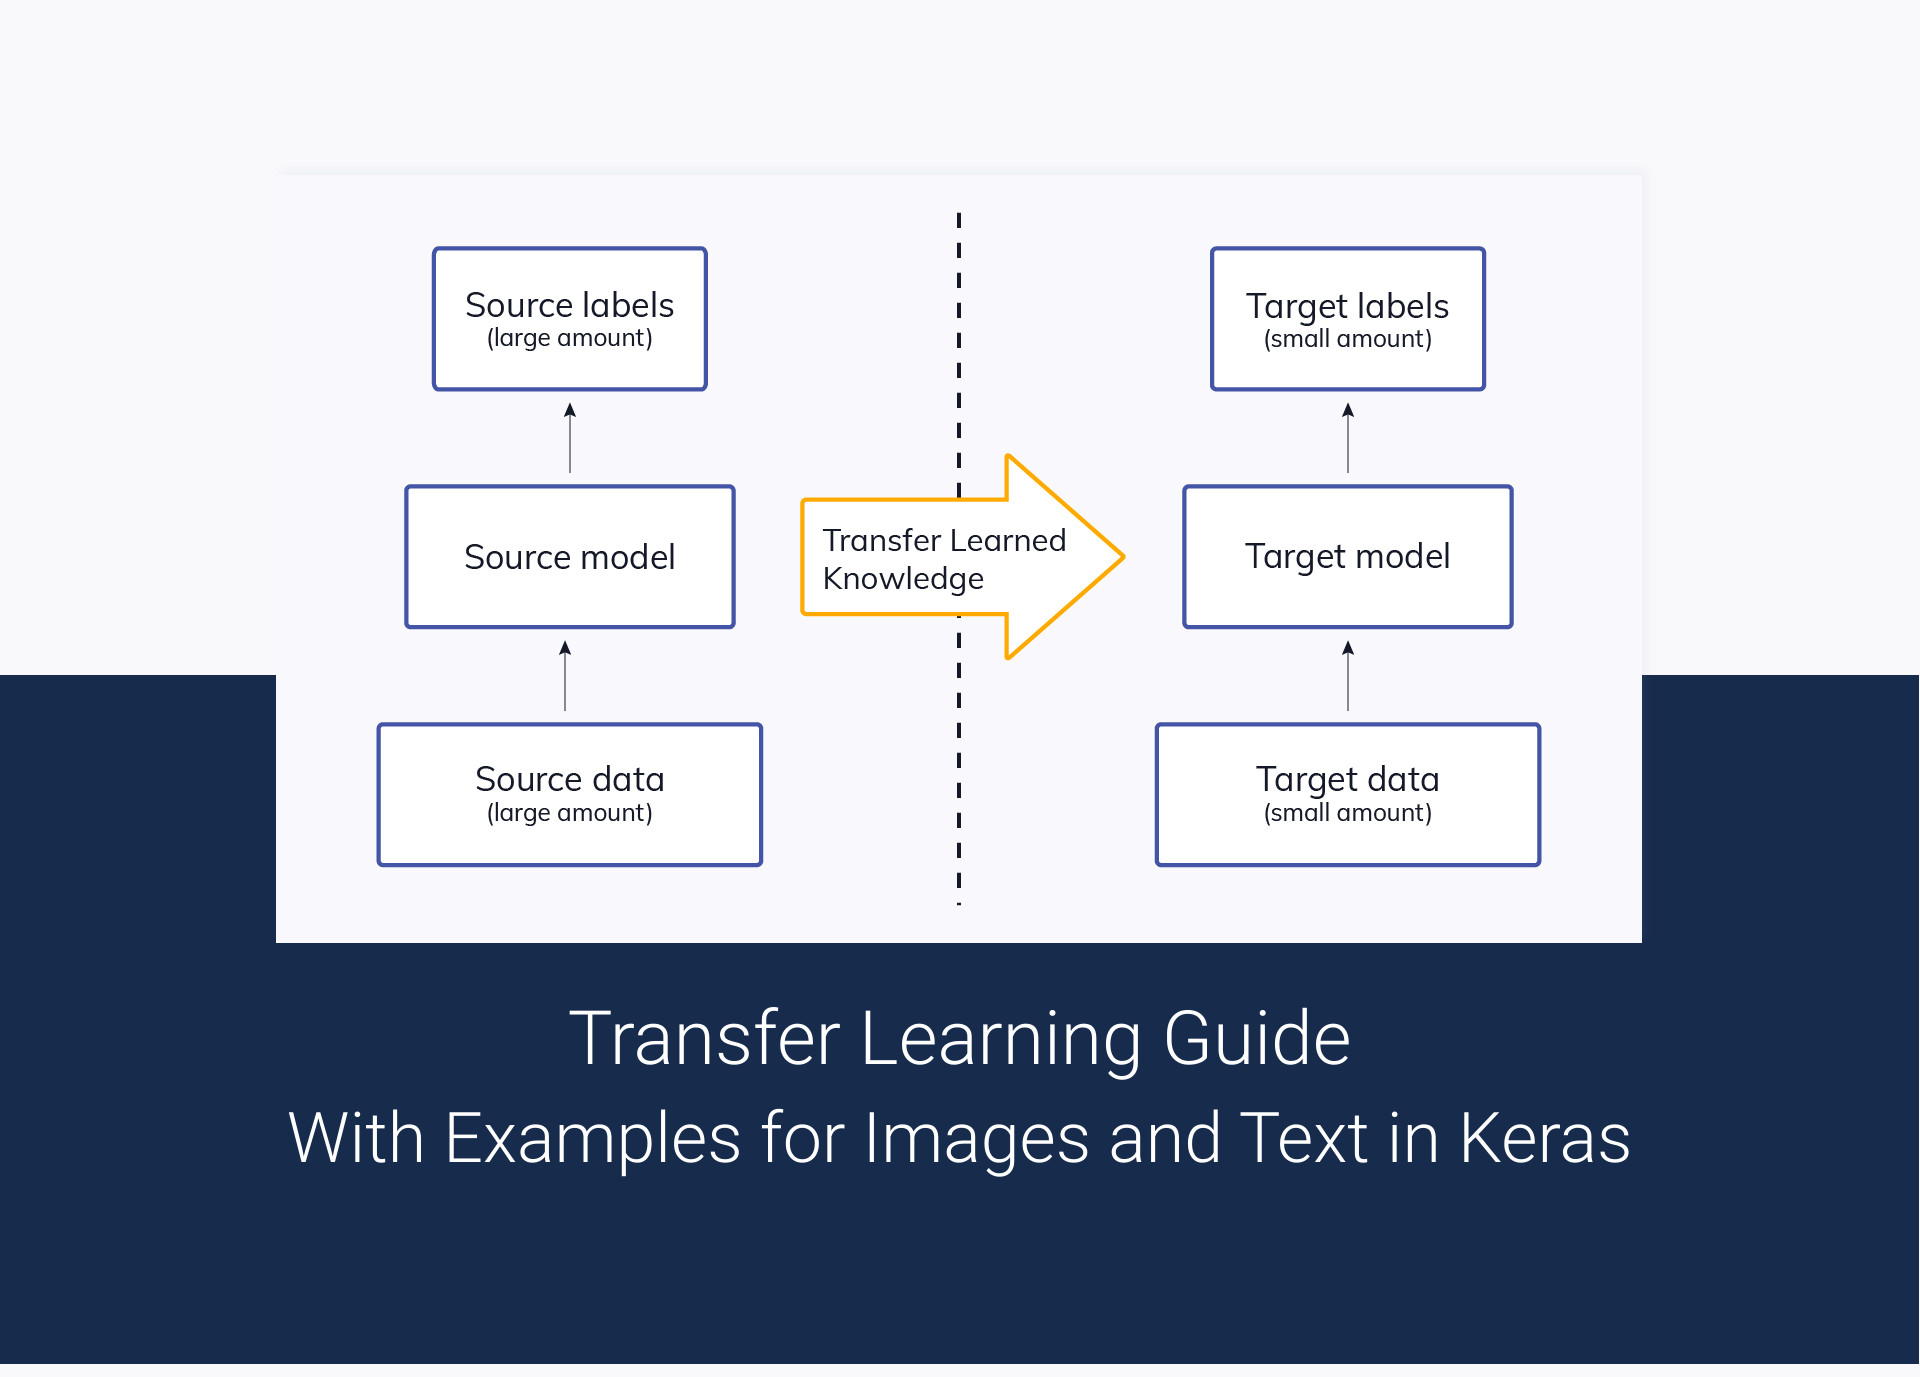 Transfer Learning Guide: A Practical Tutorial With Examples for Images and Text in Keras